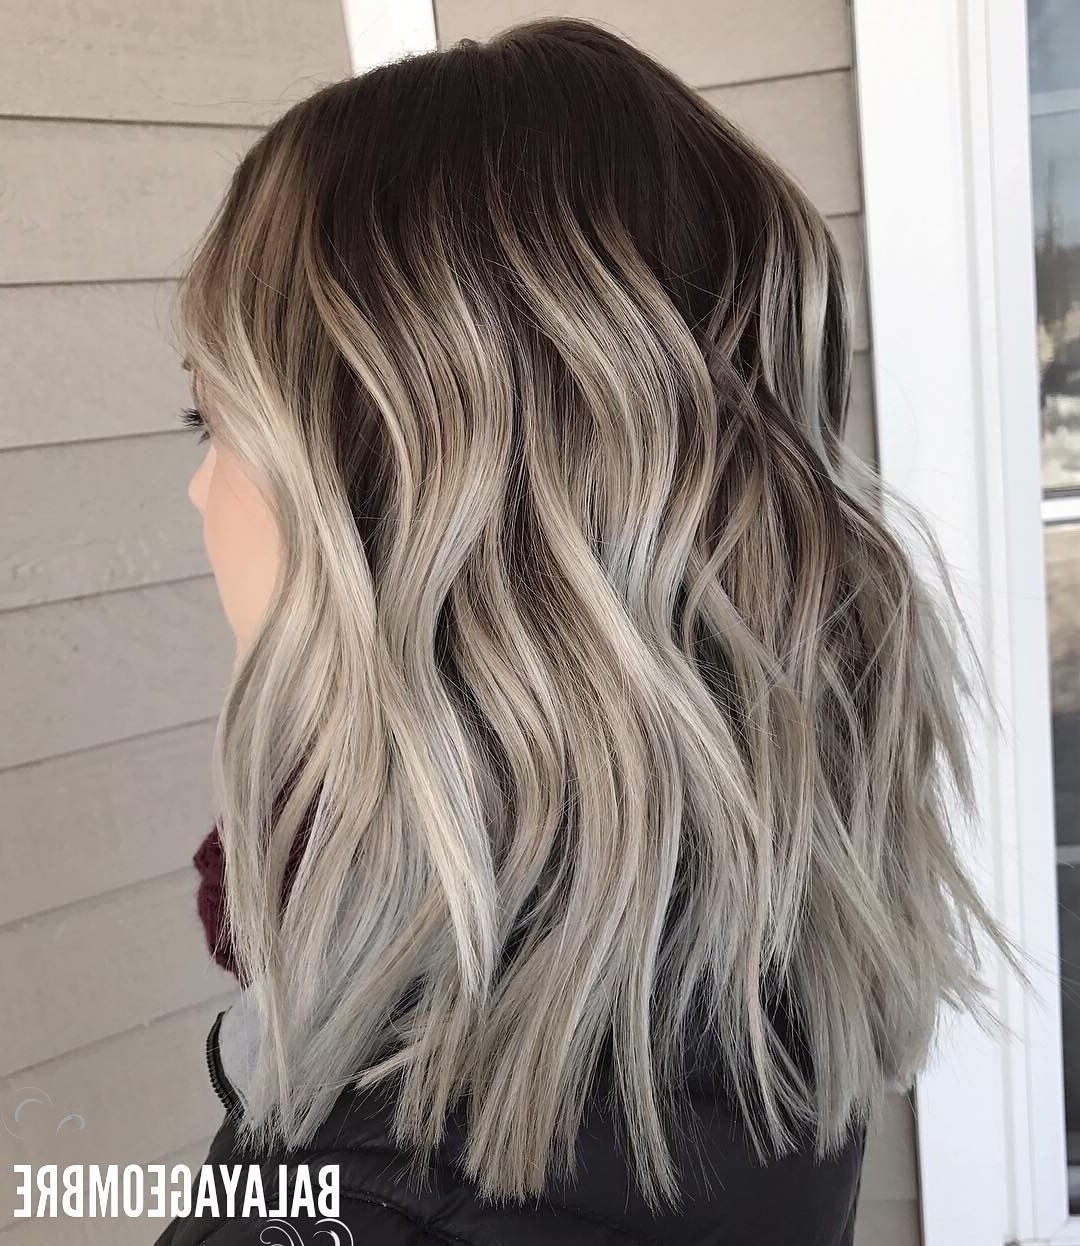 10 Best Medium Layered Hairstyles 2018 Brown & Ash Blonde Fashion Pertaining To Famous Pastel And Ash Pixie Hairstyles With Fused Layers (View 12 of 20)